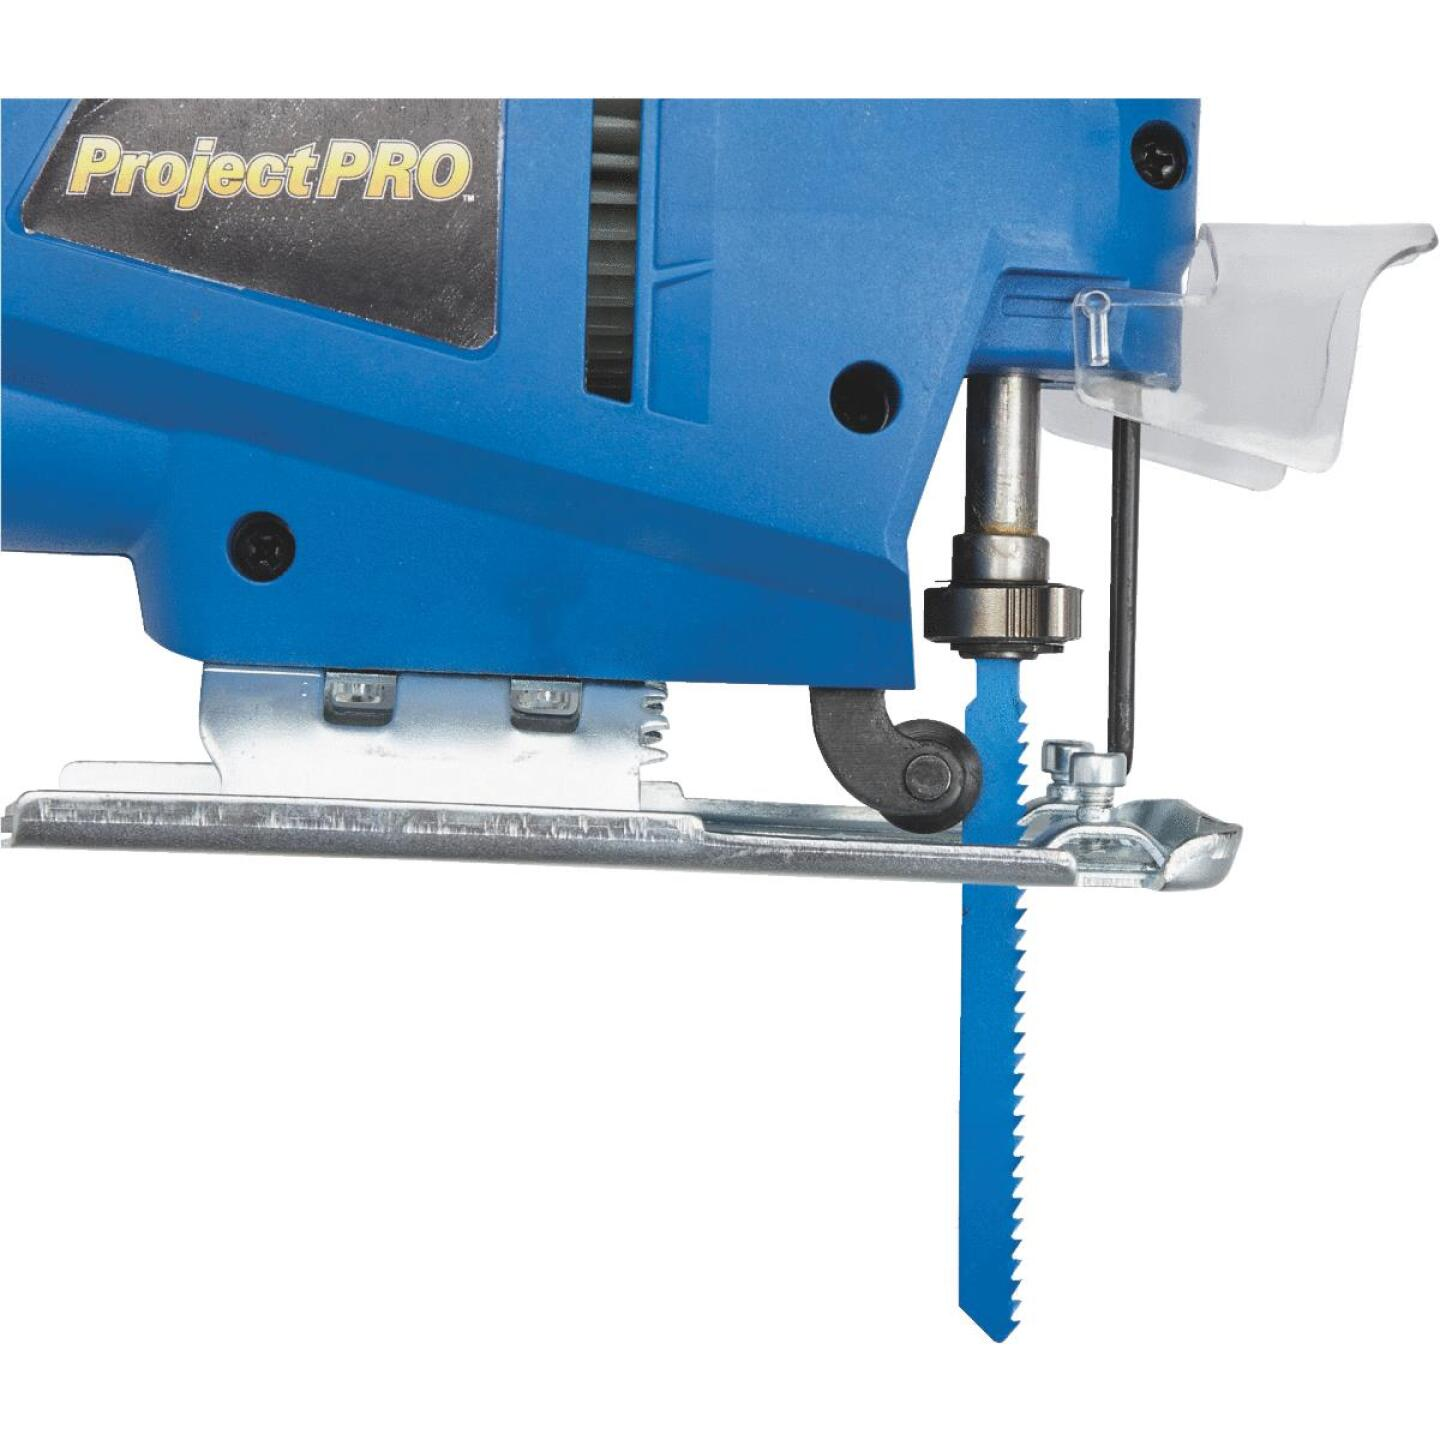 Project Pro 4.5A 0-3000 SPM Speed Jig Saw Image 10